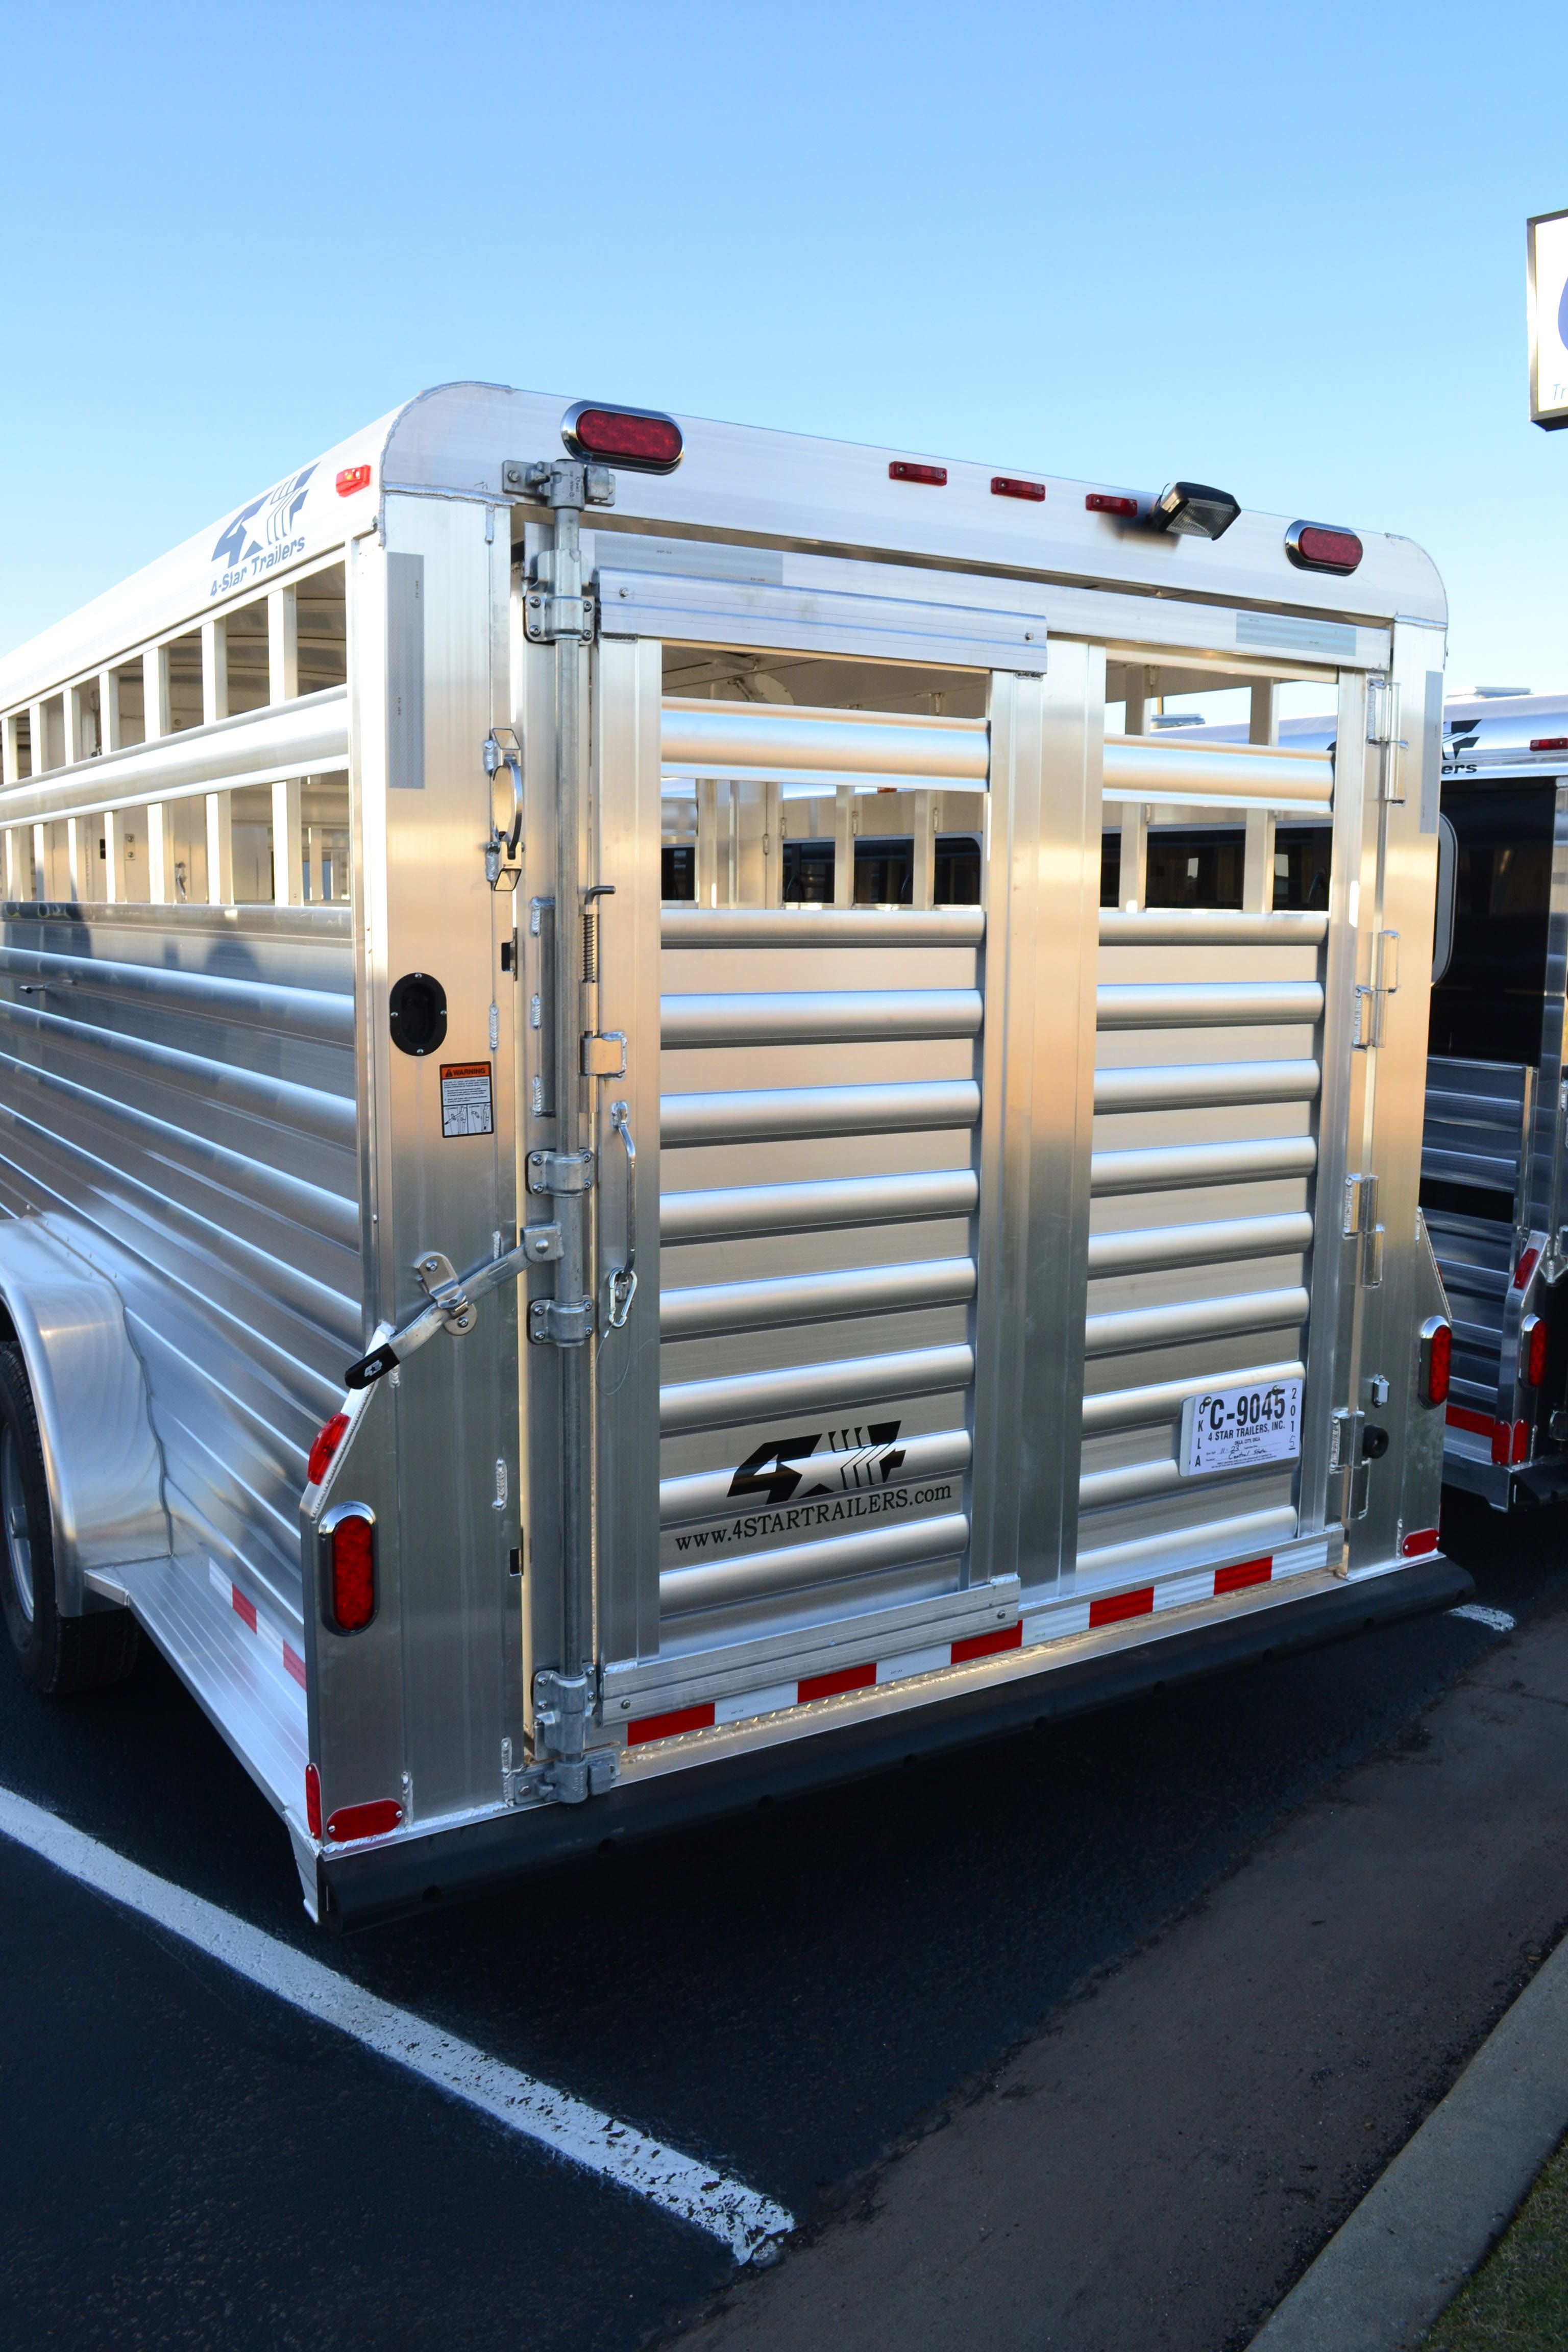 2016 4 star aluminum stock gooseneck trailer 24 long and 7 wide 2016 aluminum stock gooseneck trailer long and wide this rear gate is equipped with a half slider and a slam latch double led tail lights for more sciox Images